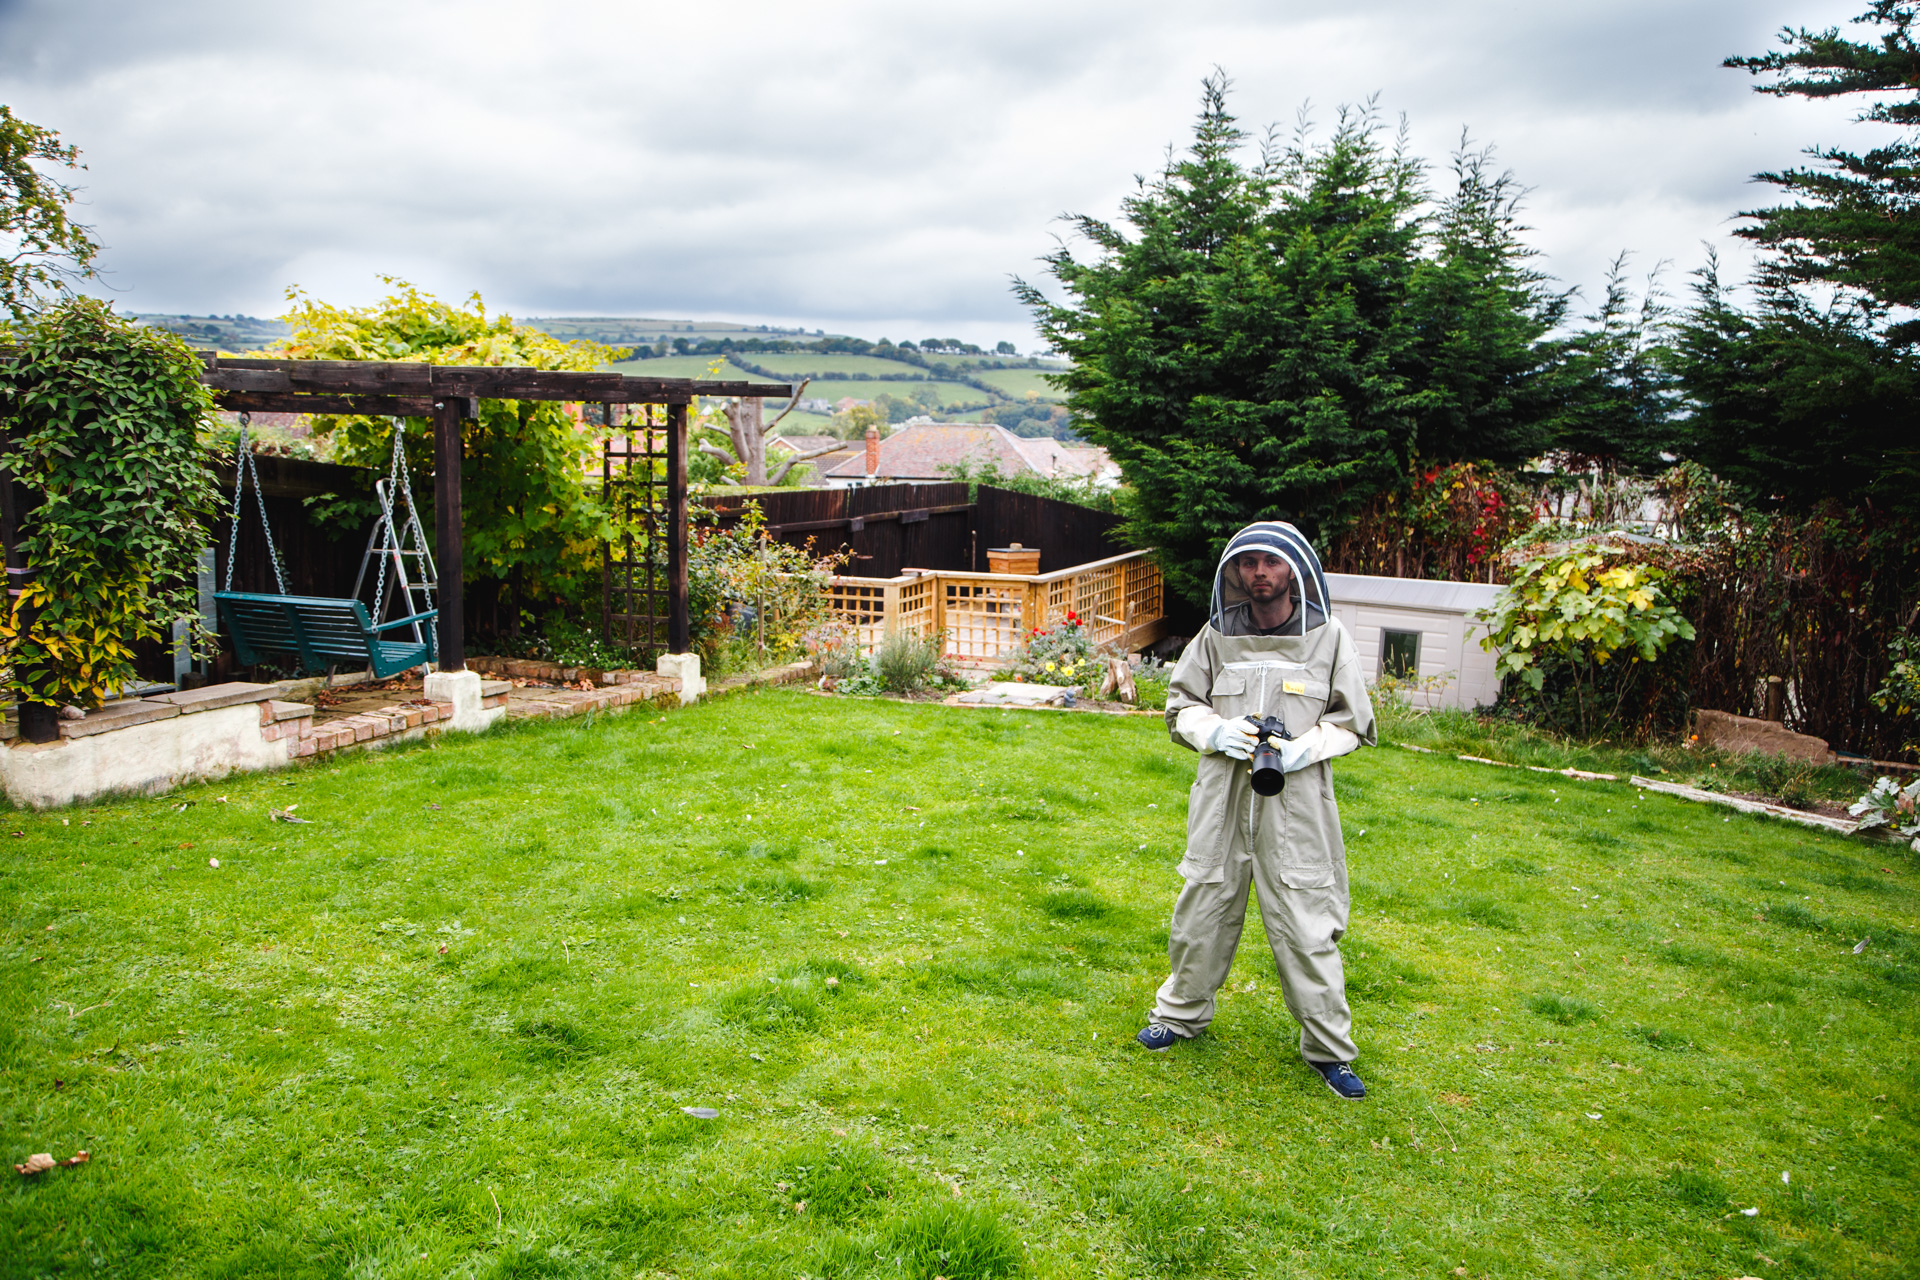 Me, in the suit, in my parents garden. The hive is in the centre of the background.